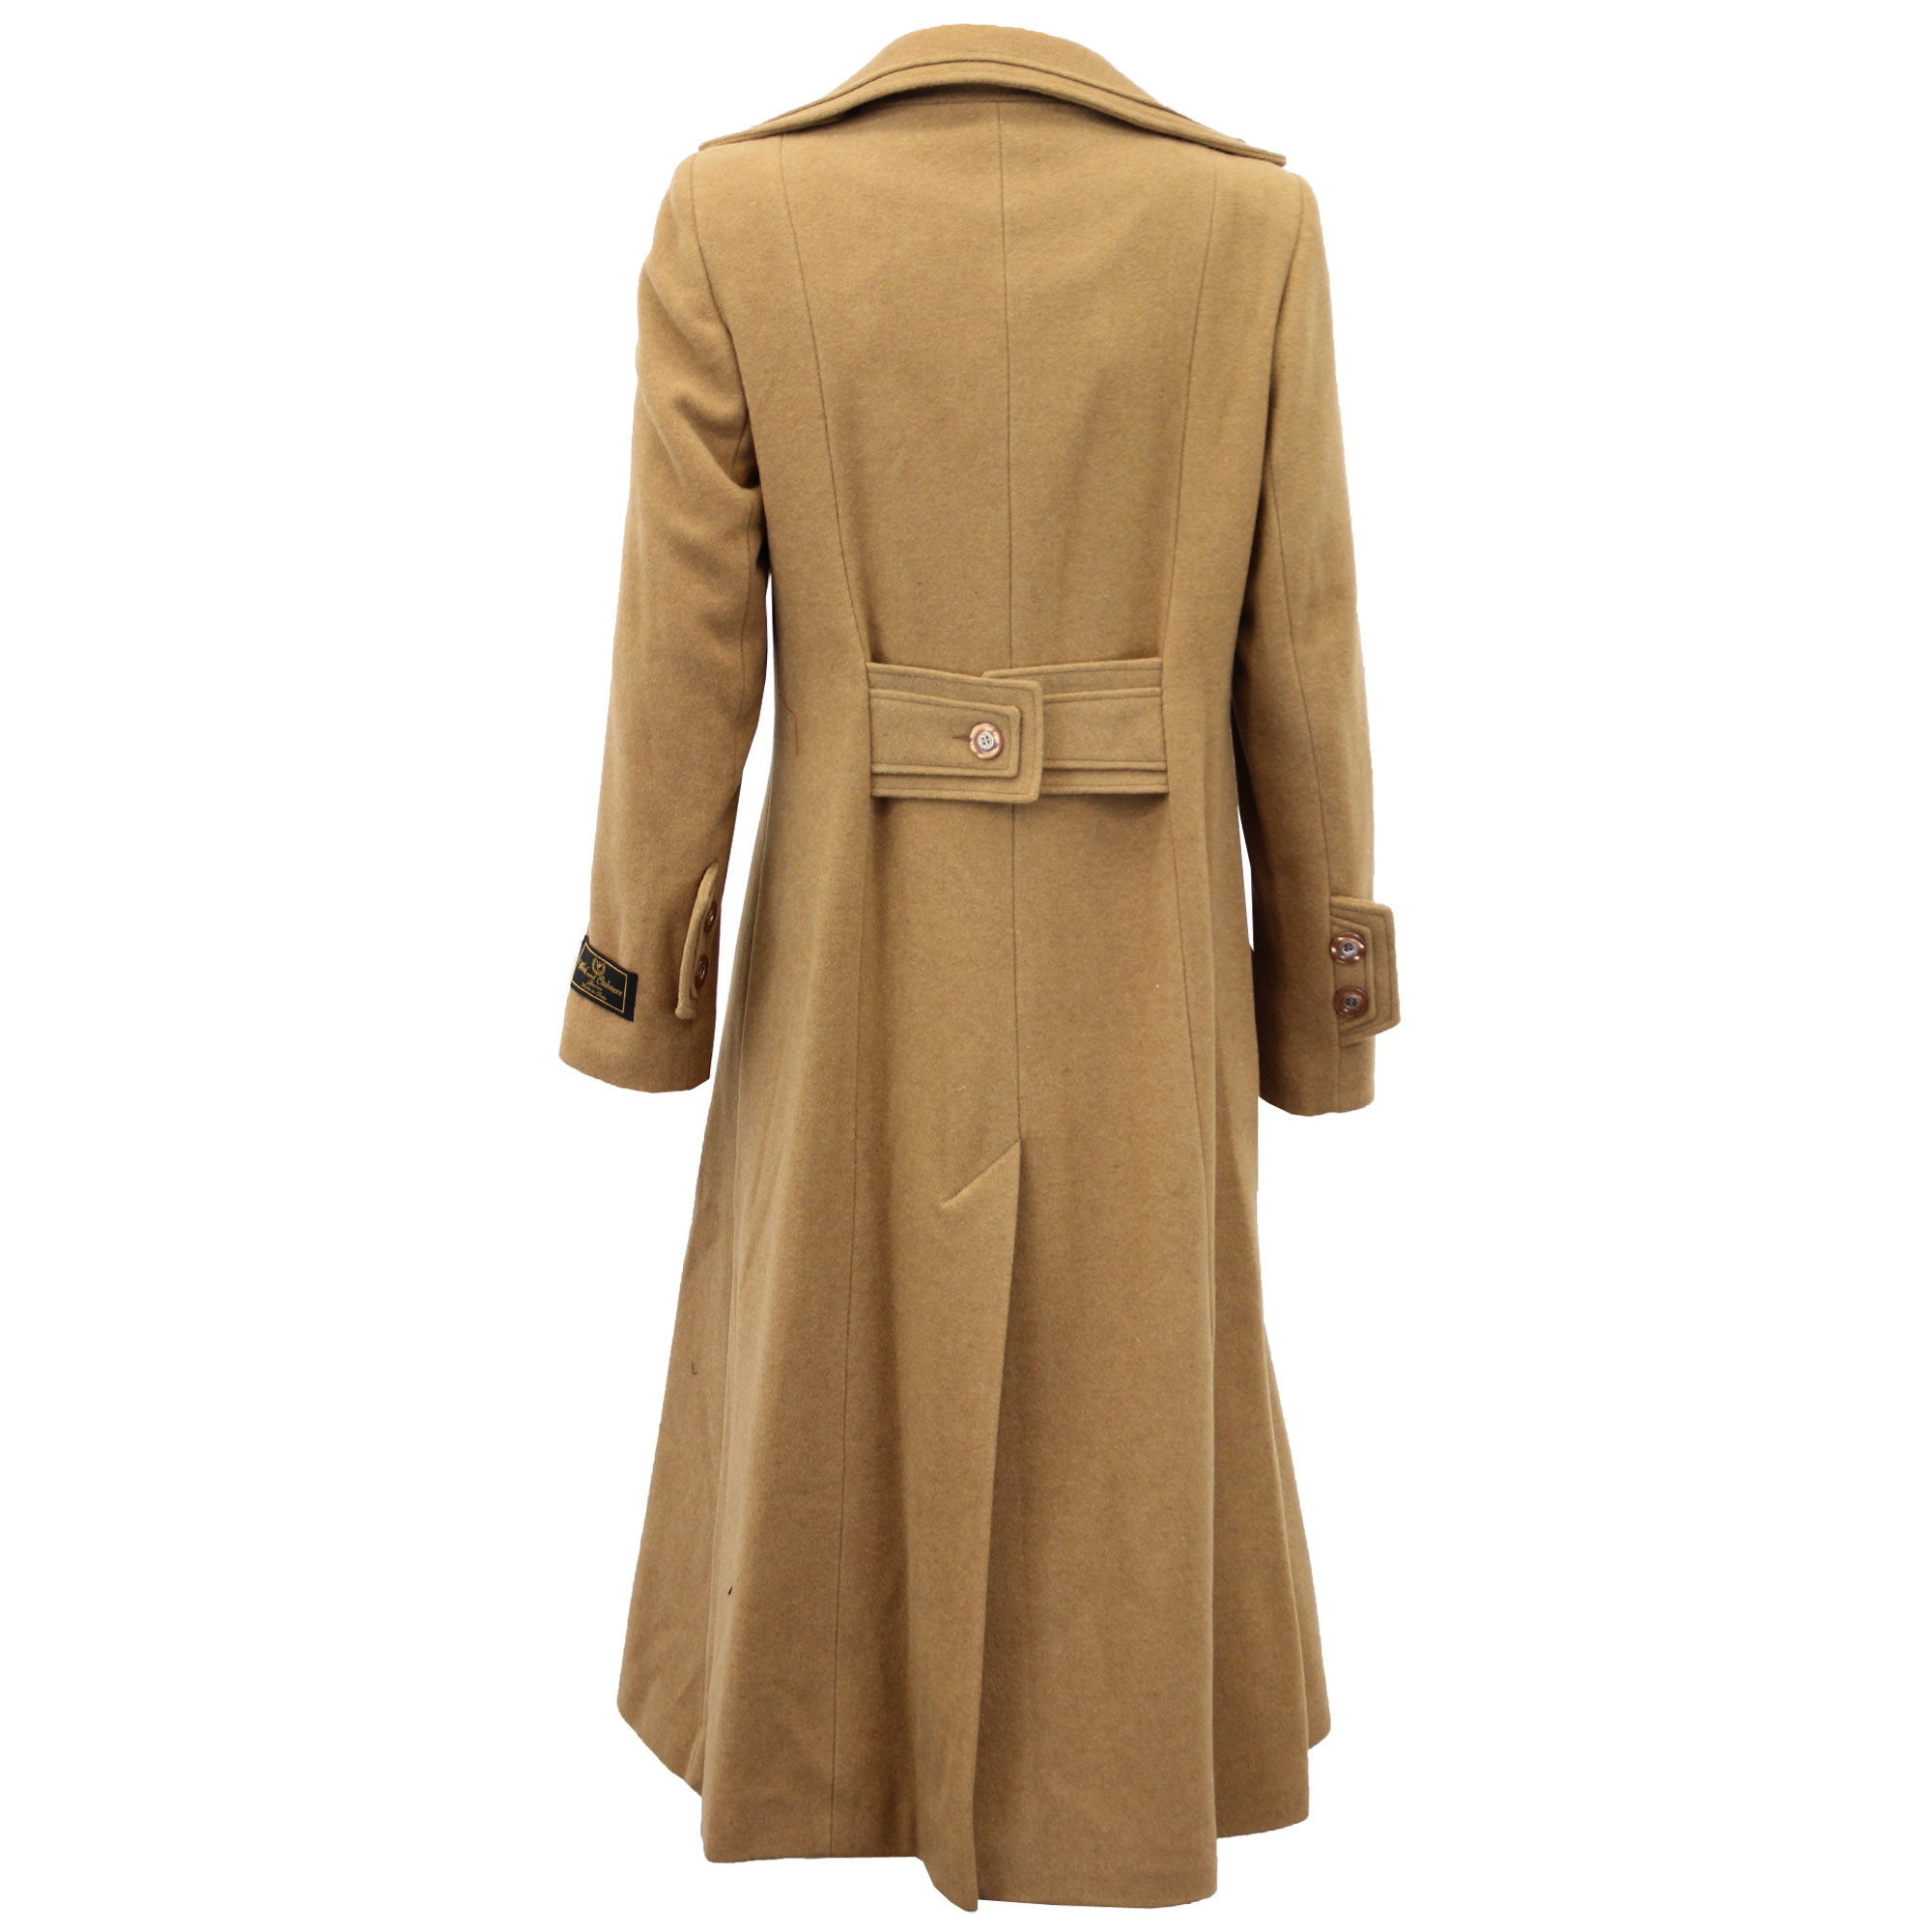 Ladies-Wool-Cashmere-Coat-Women-Jacket-Outerwear-Trench-Overcoat-Winter-Lined thumbnail 23